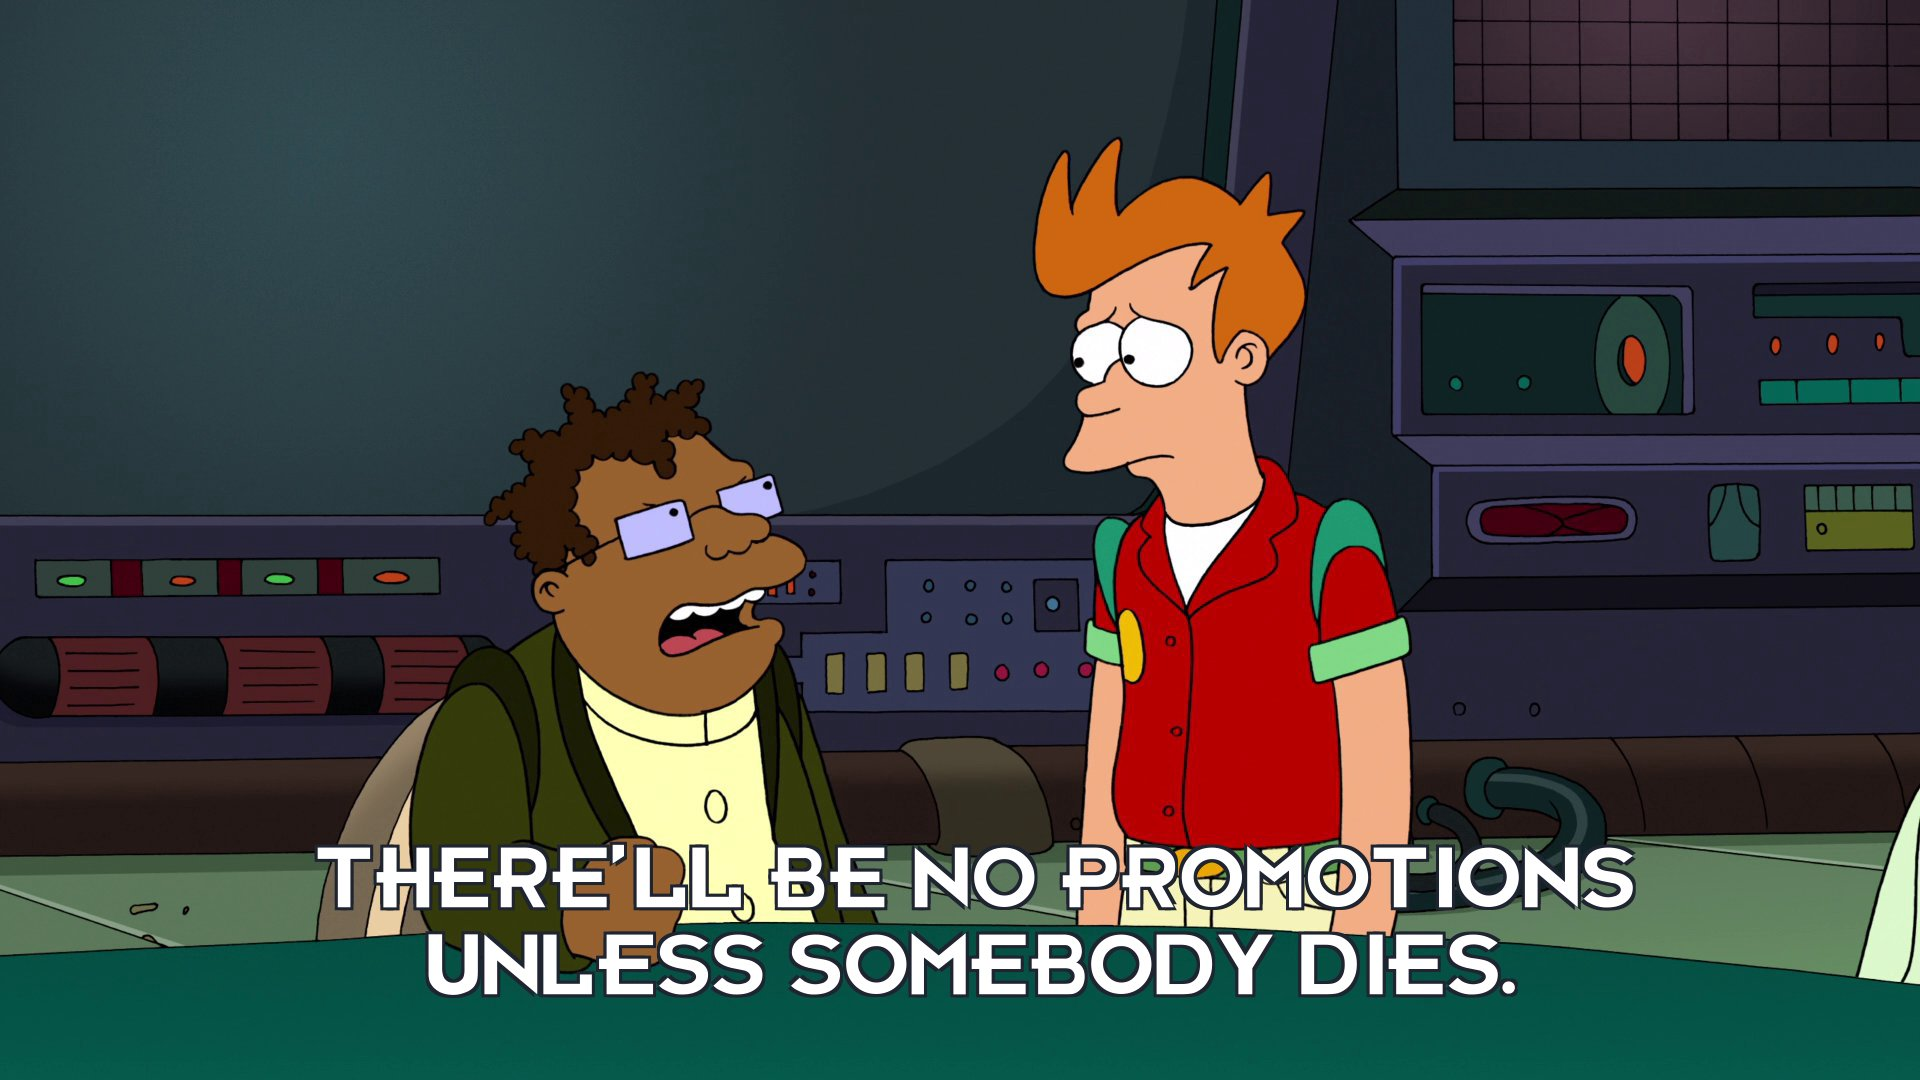 Hermes Conrad: There'll be no promotions unless somebody dies.